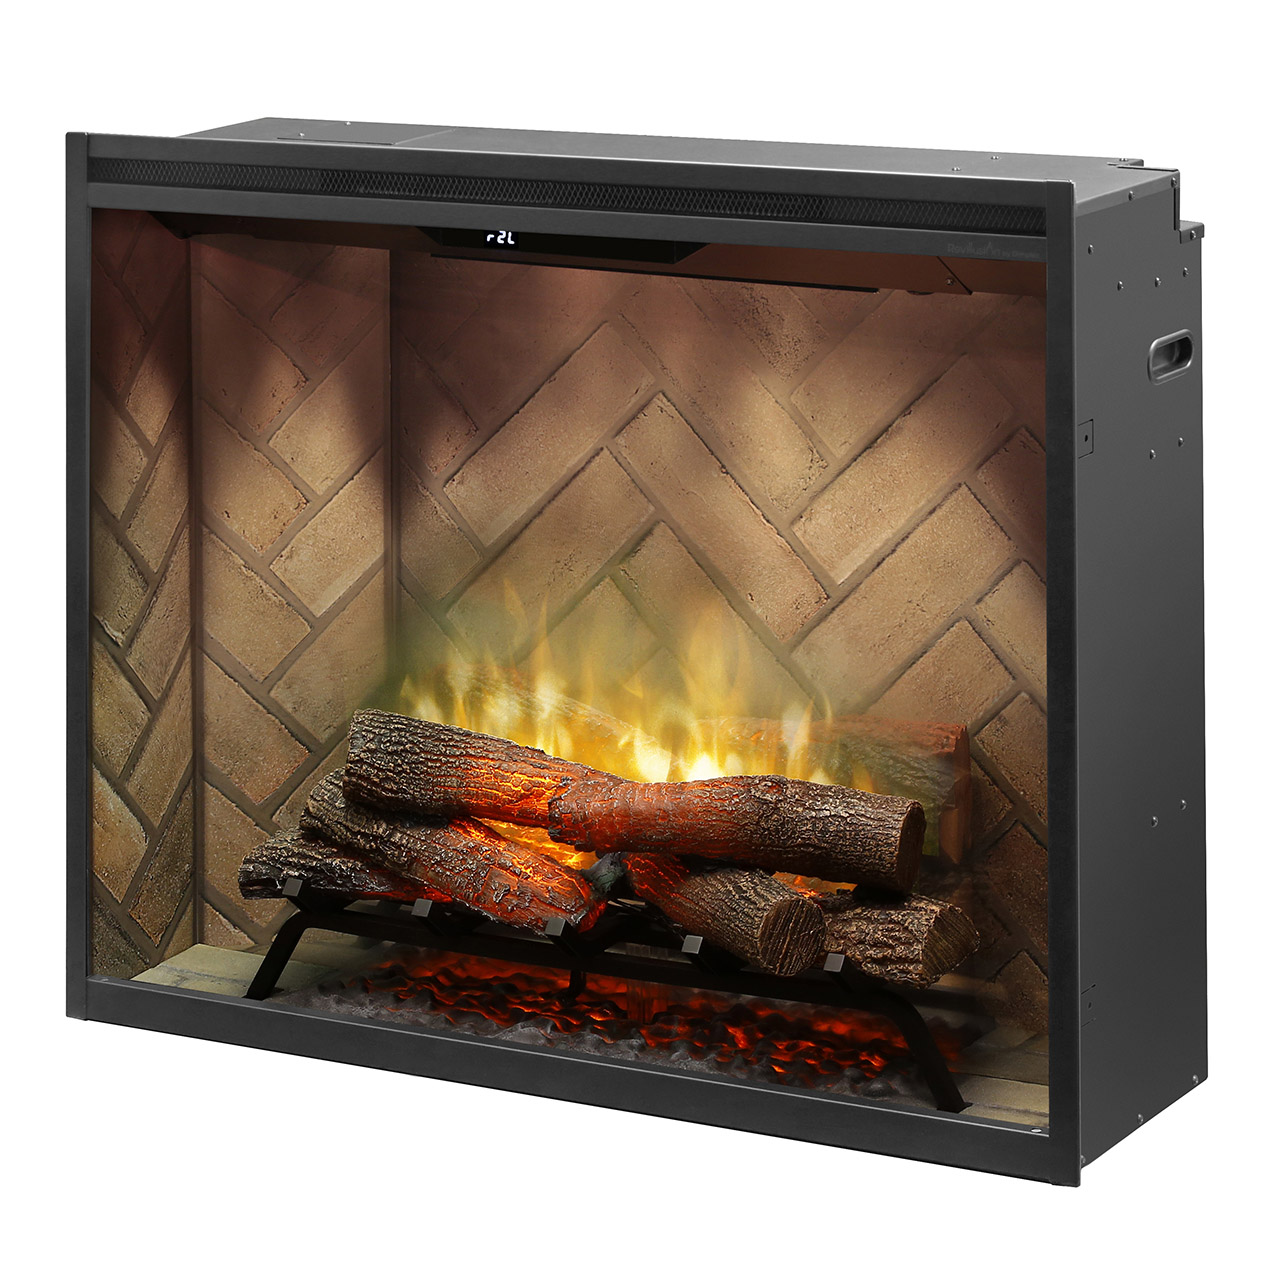 Revillusion 36 Portrait Built-in Firebox